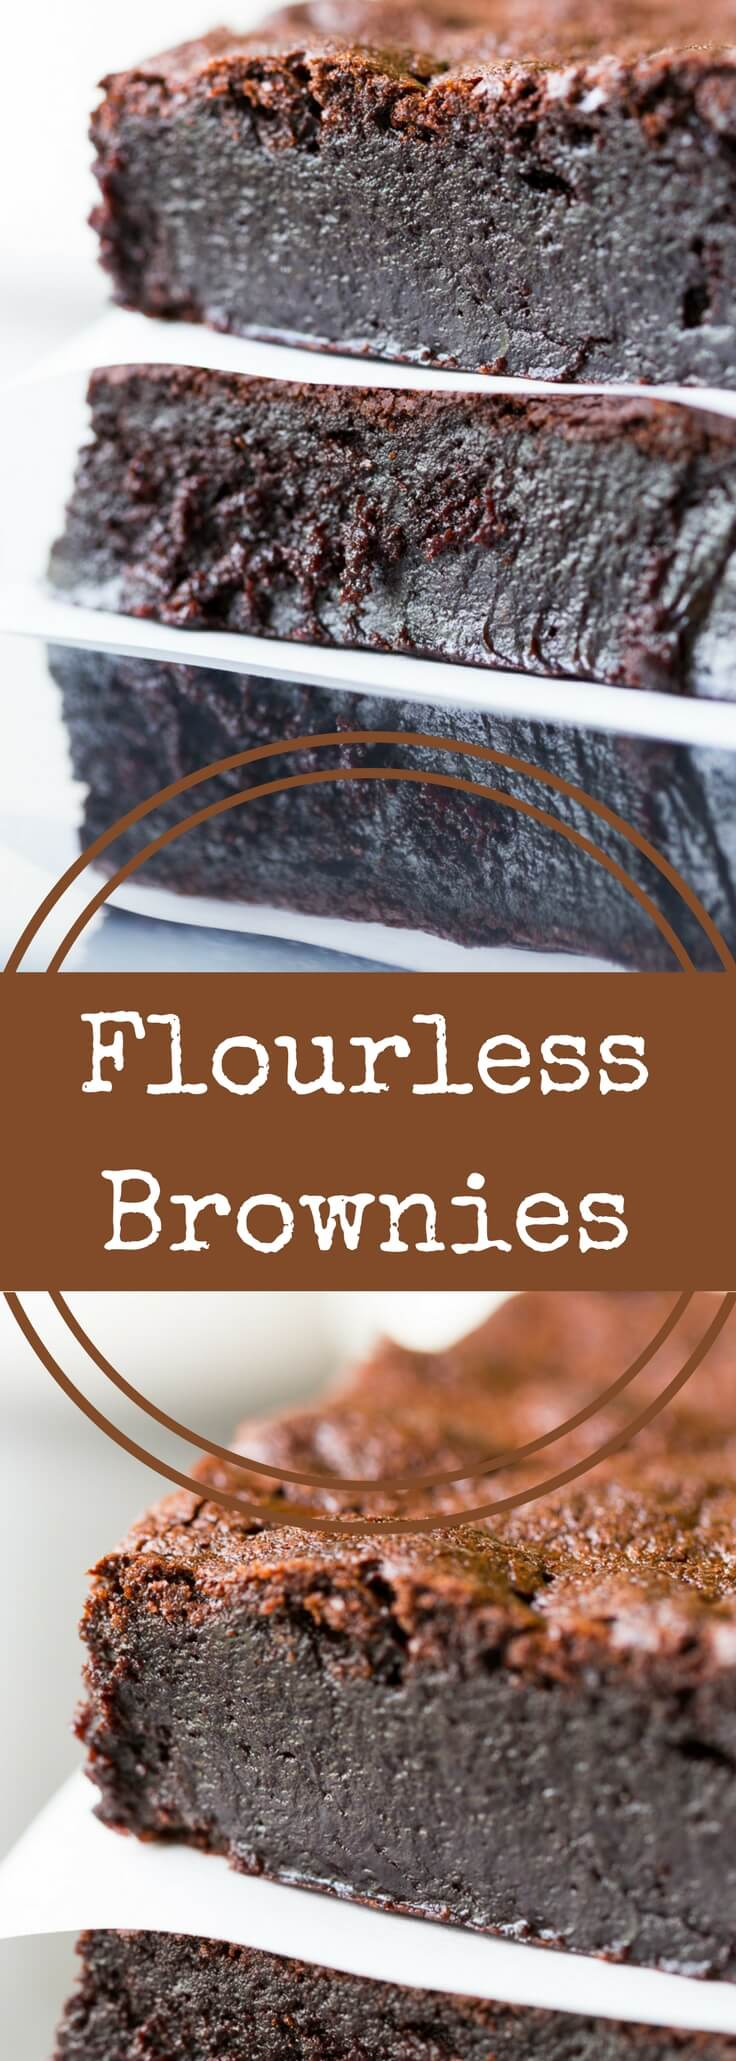 Decadent Flourless Brownies Recipe